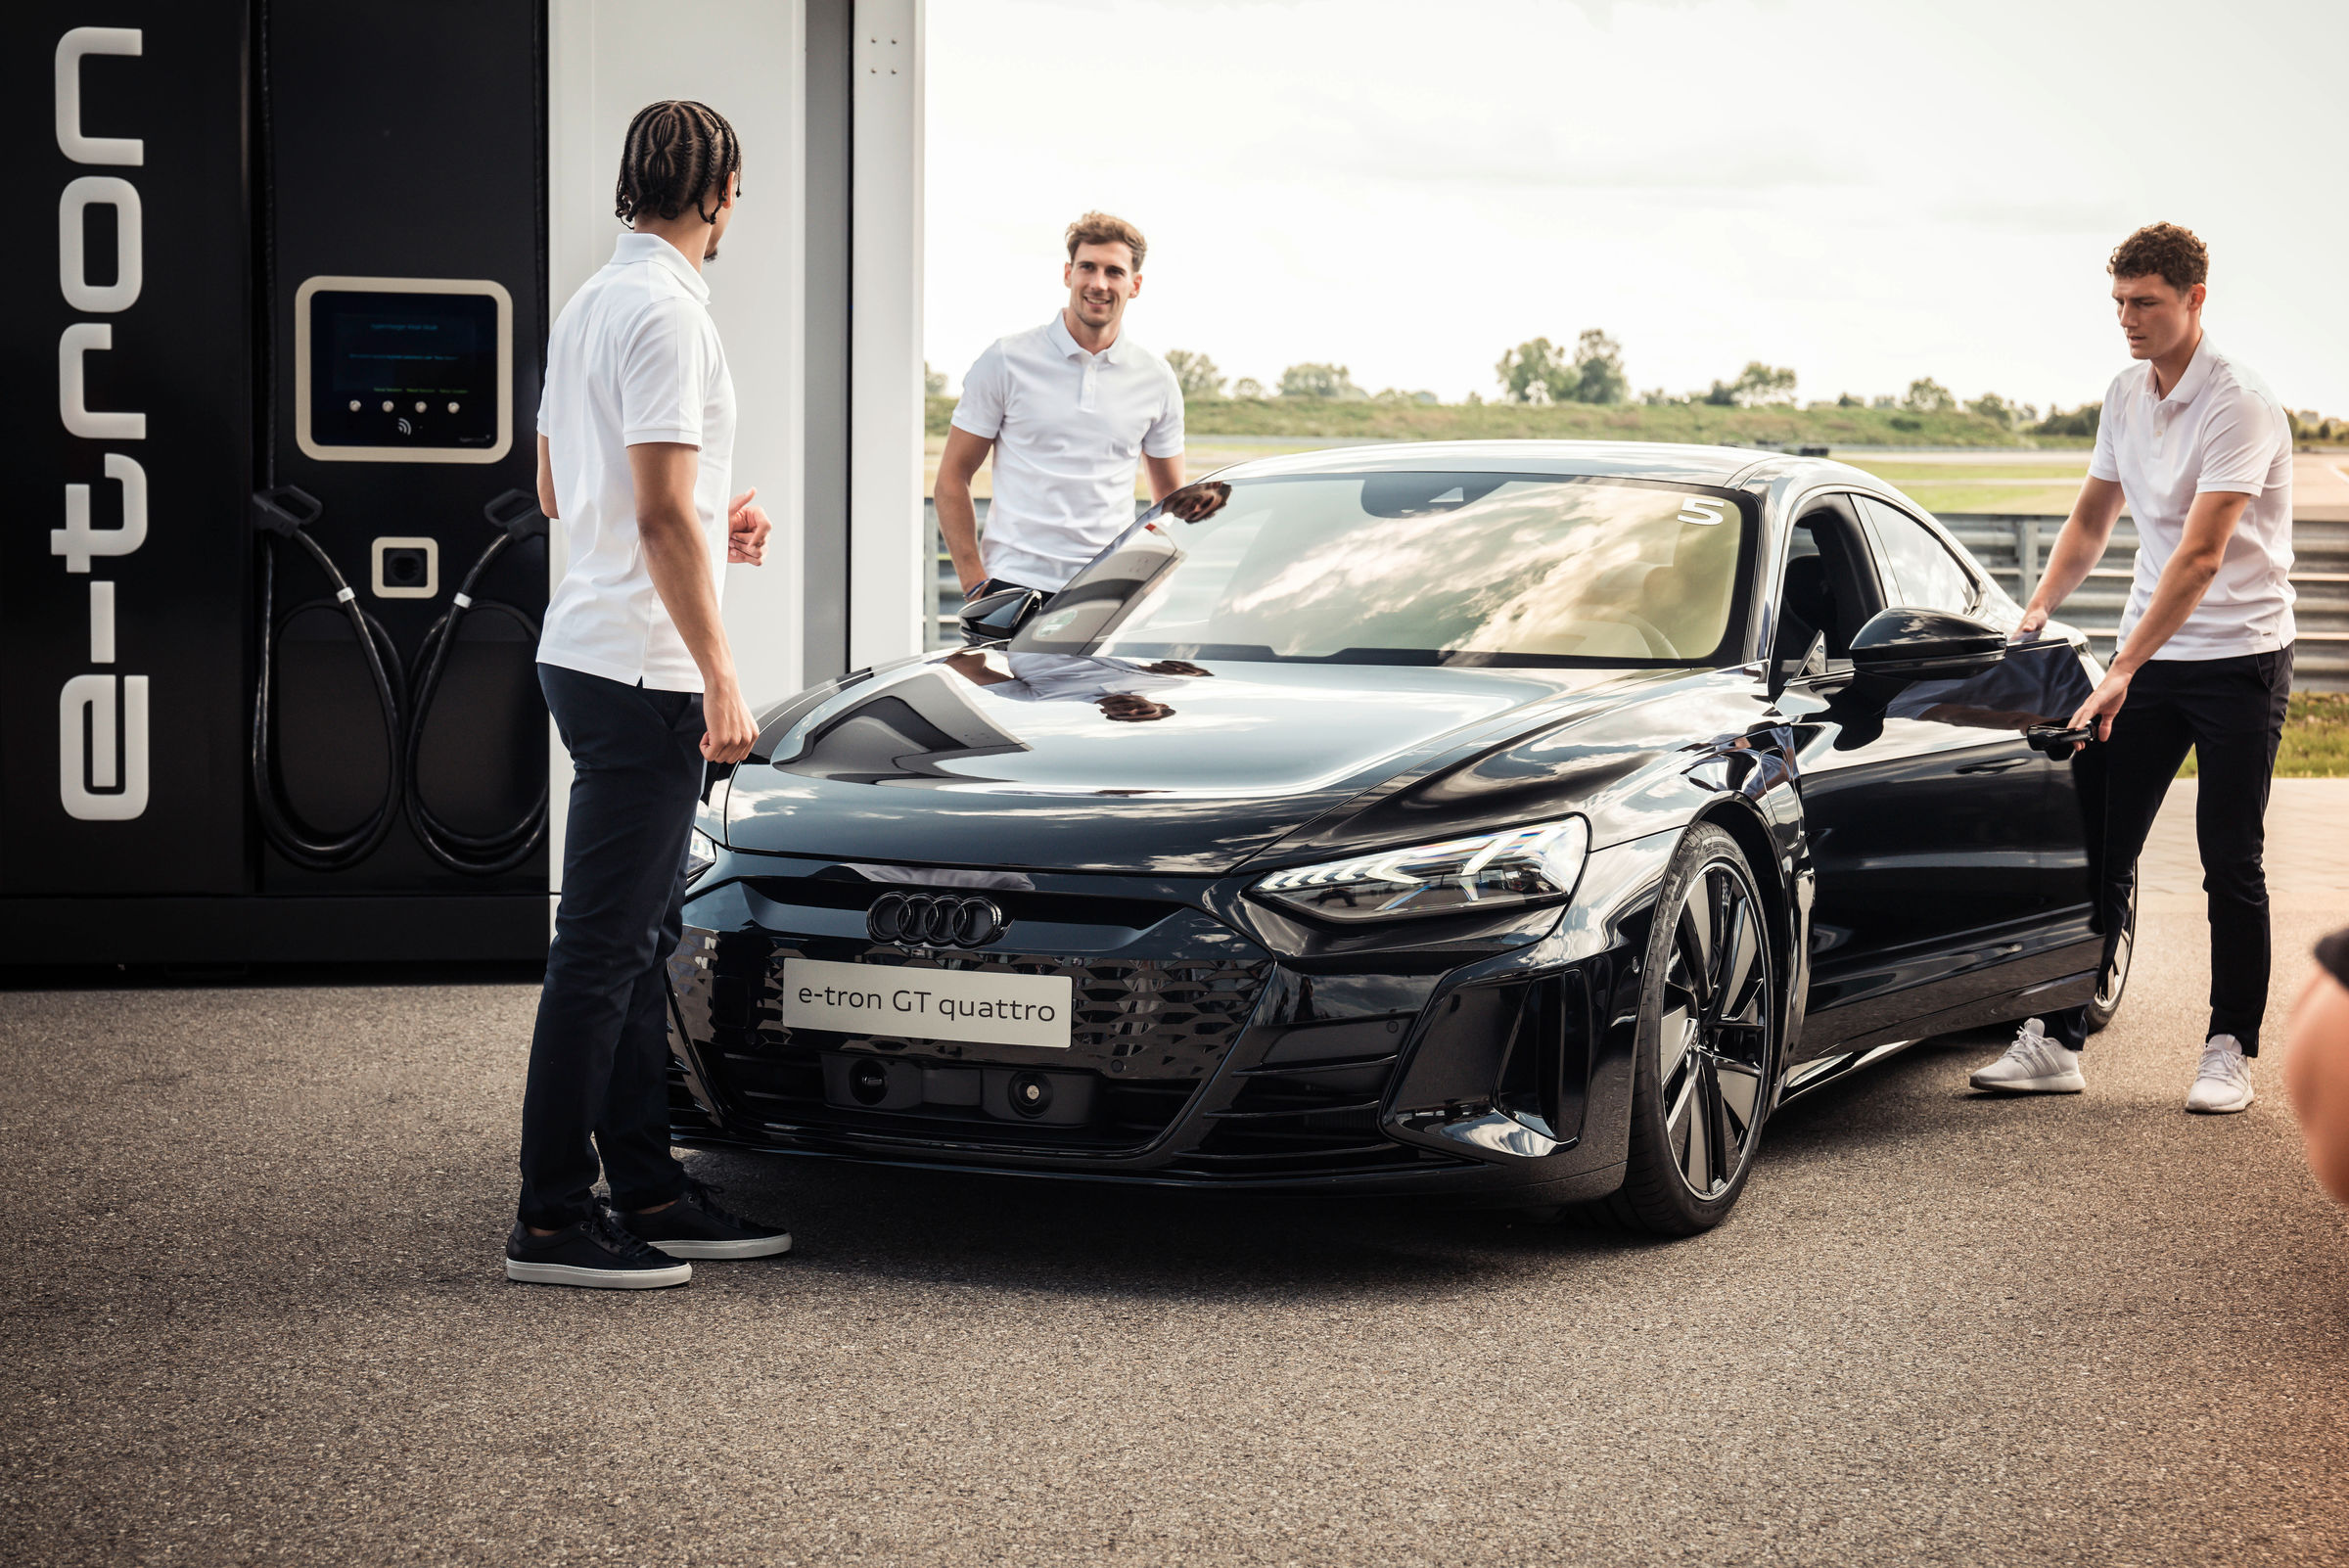 Electrification 2.0: pros from FC Bayern receive Audi e-tron GT - Image 1